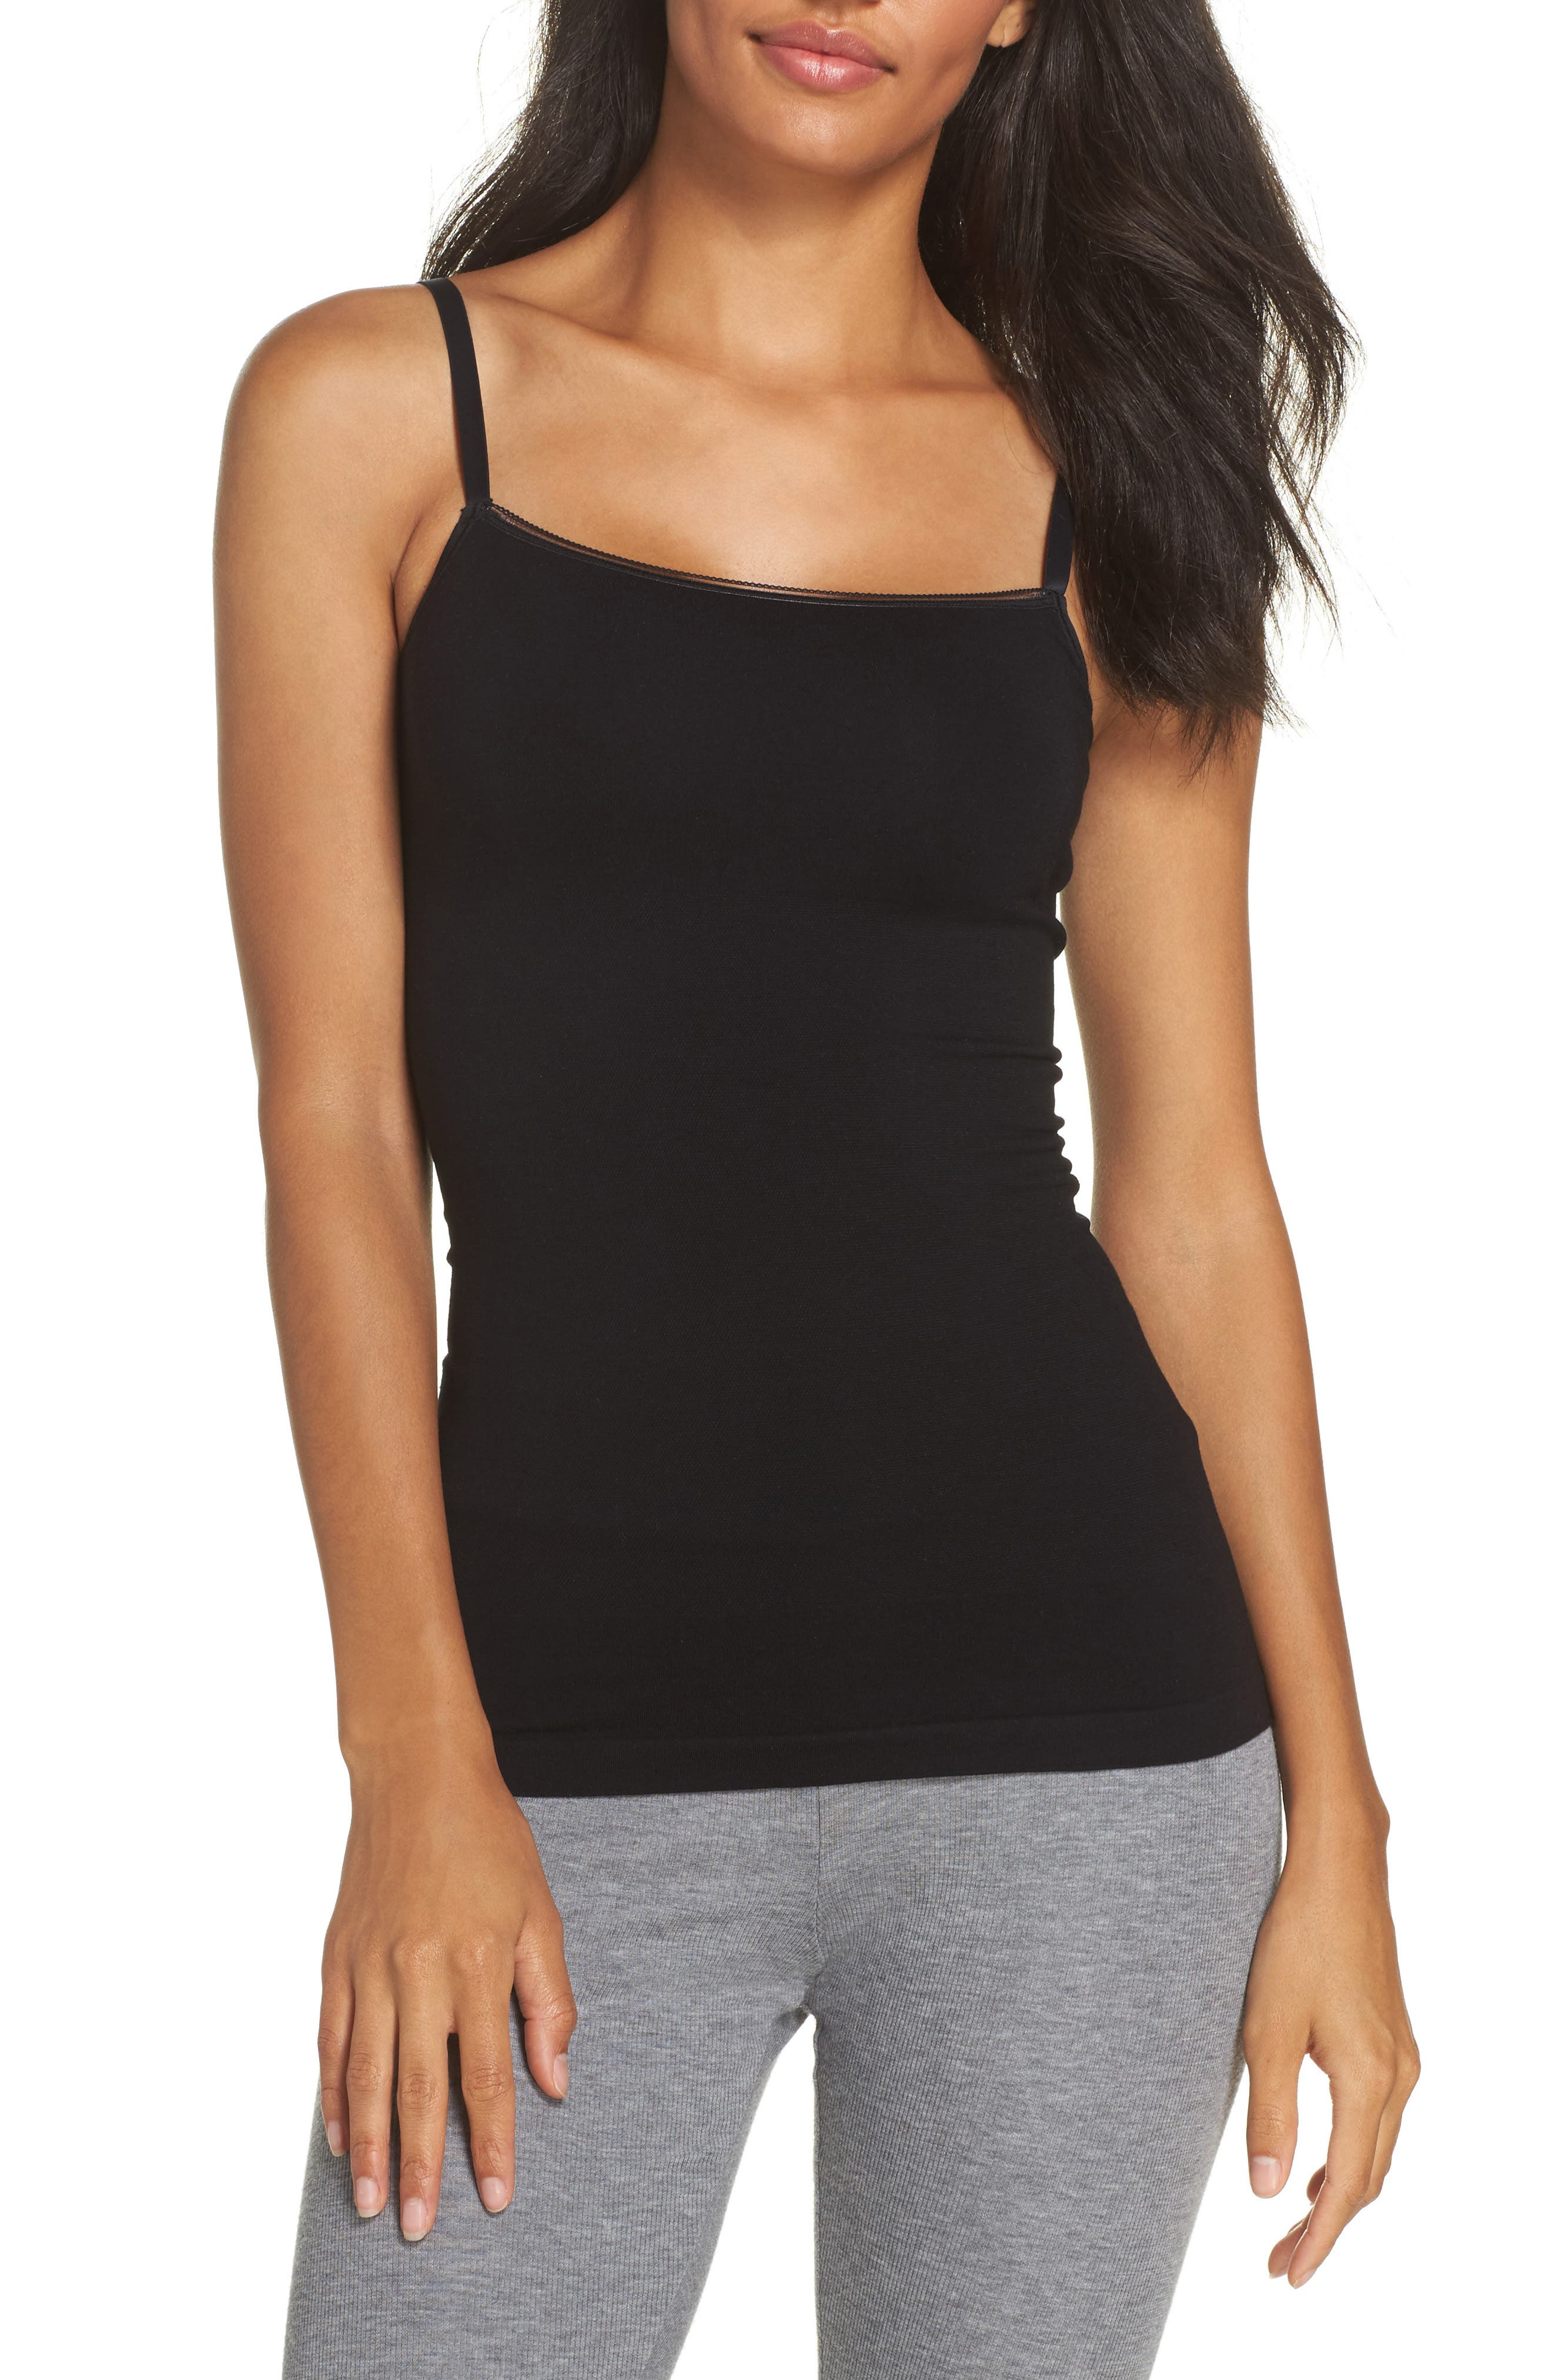 Alternate Image 1 Selected - Yummie Seamlessly Shaped Convertible Camisole (2 for $58)